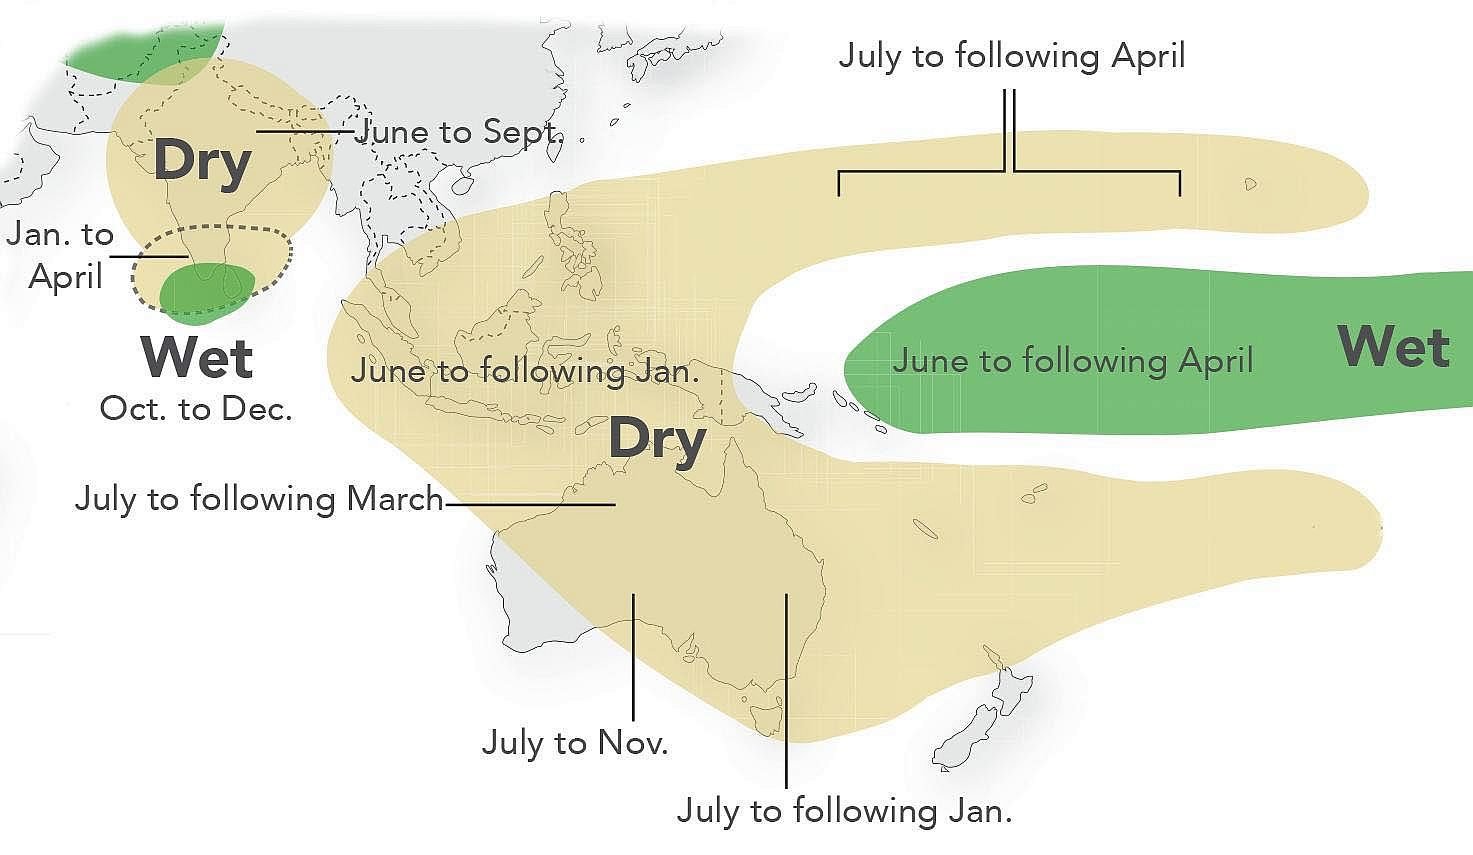 Historical El Niño regional trends for Asia and the Pacific